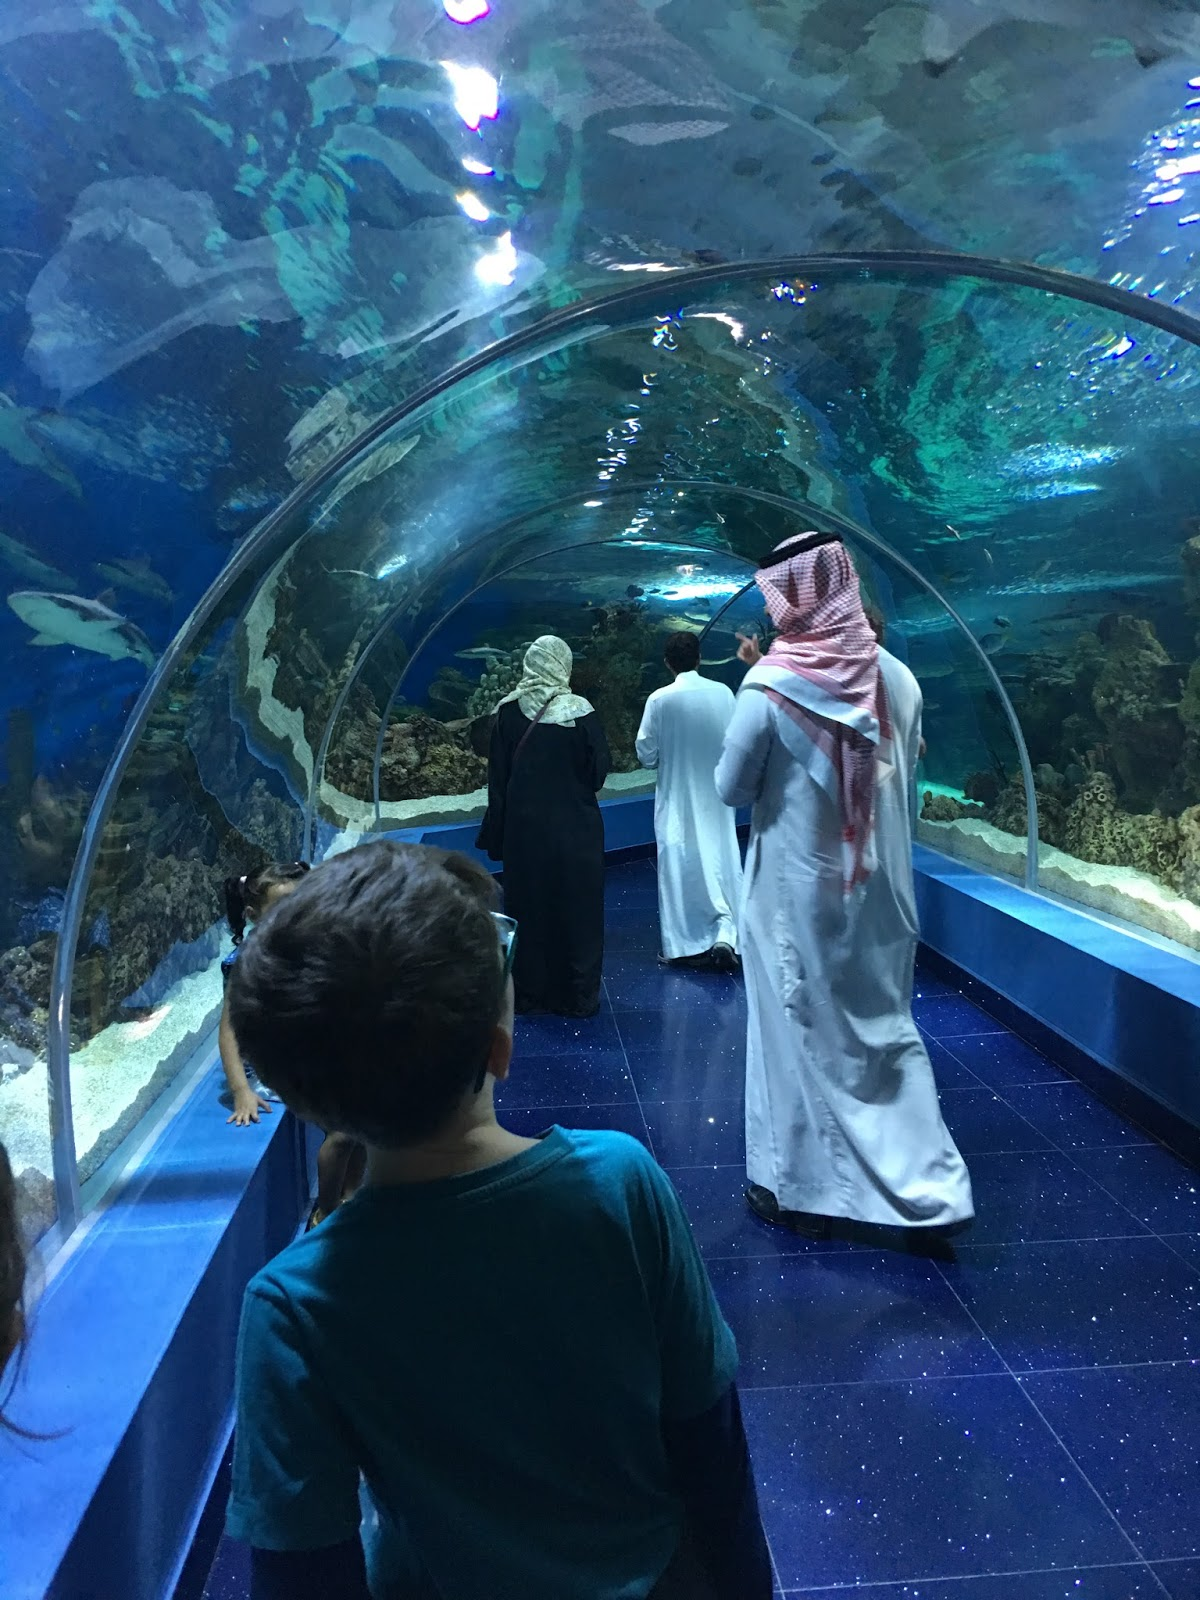 Fish aquarium in jeddah - All The Favourites Are There Sharks Mostly Black Tips Turtles Parrot Fish Clown Fish Eels Seahorses And Jellyfish Fakieh Aquarium Jeddah